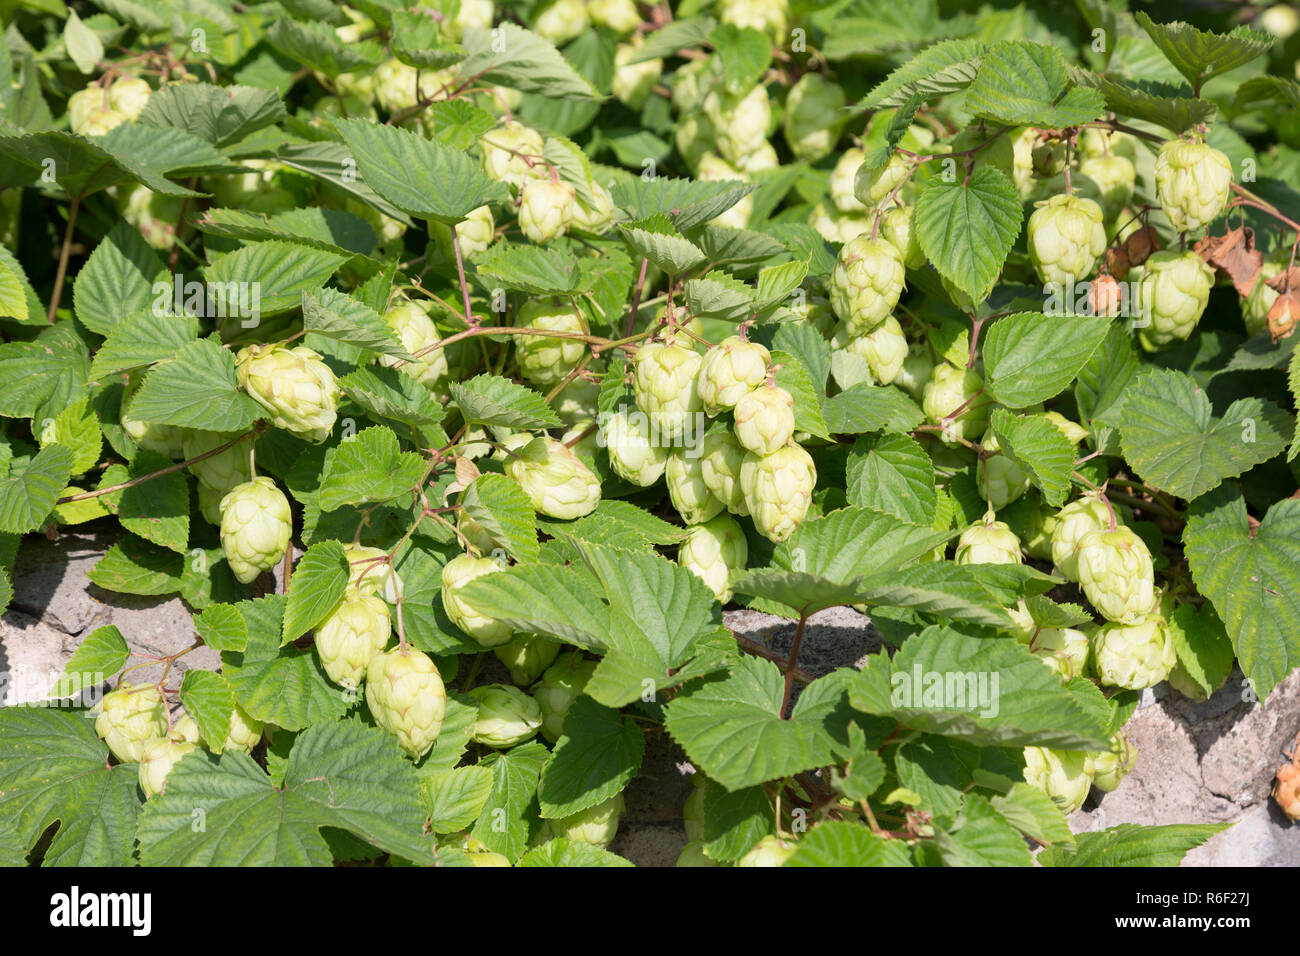 Fresh green hops cones for making beer and bread - Stock Image